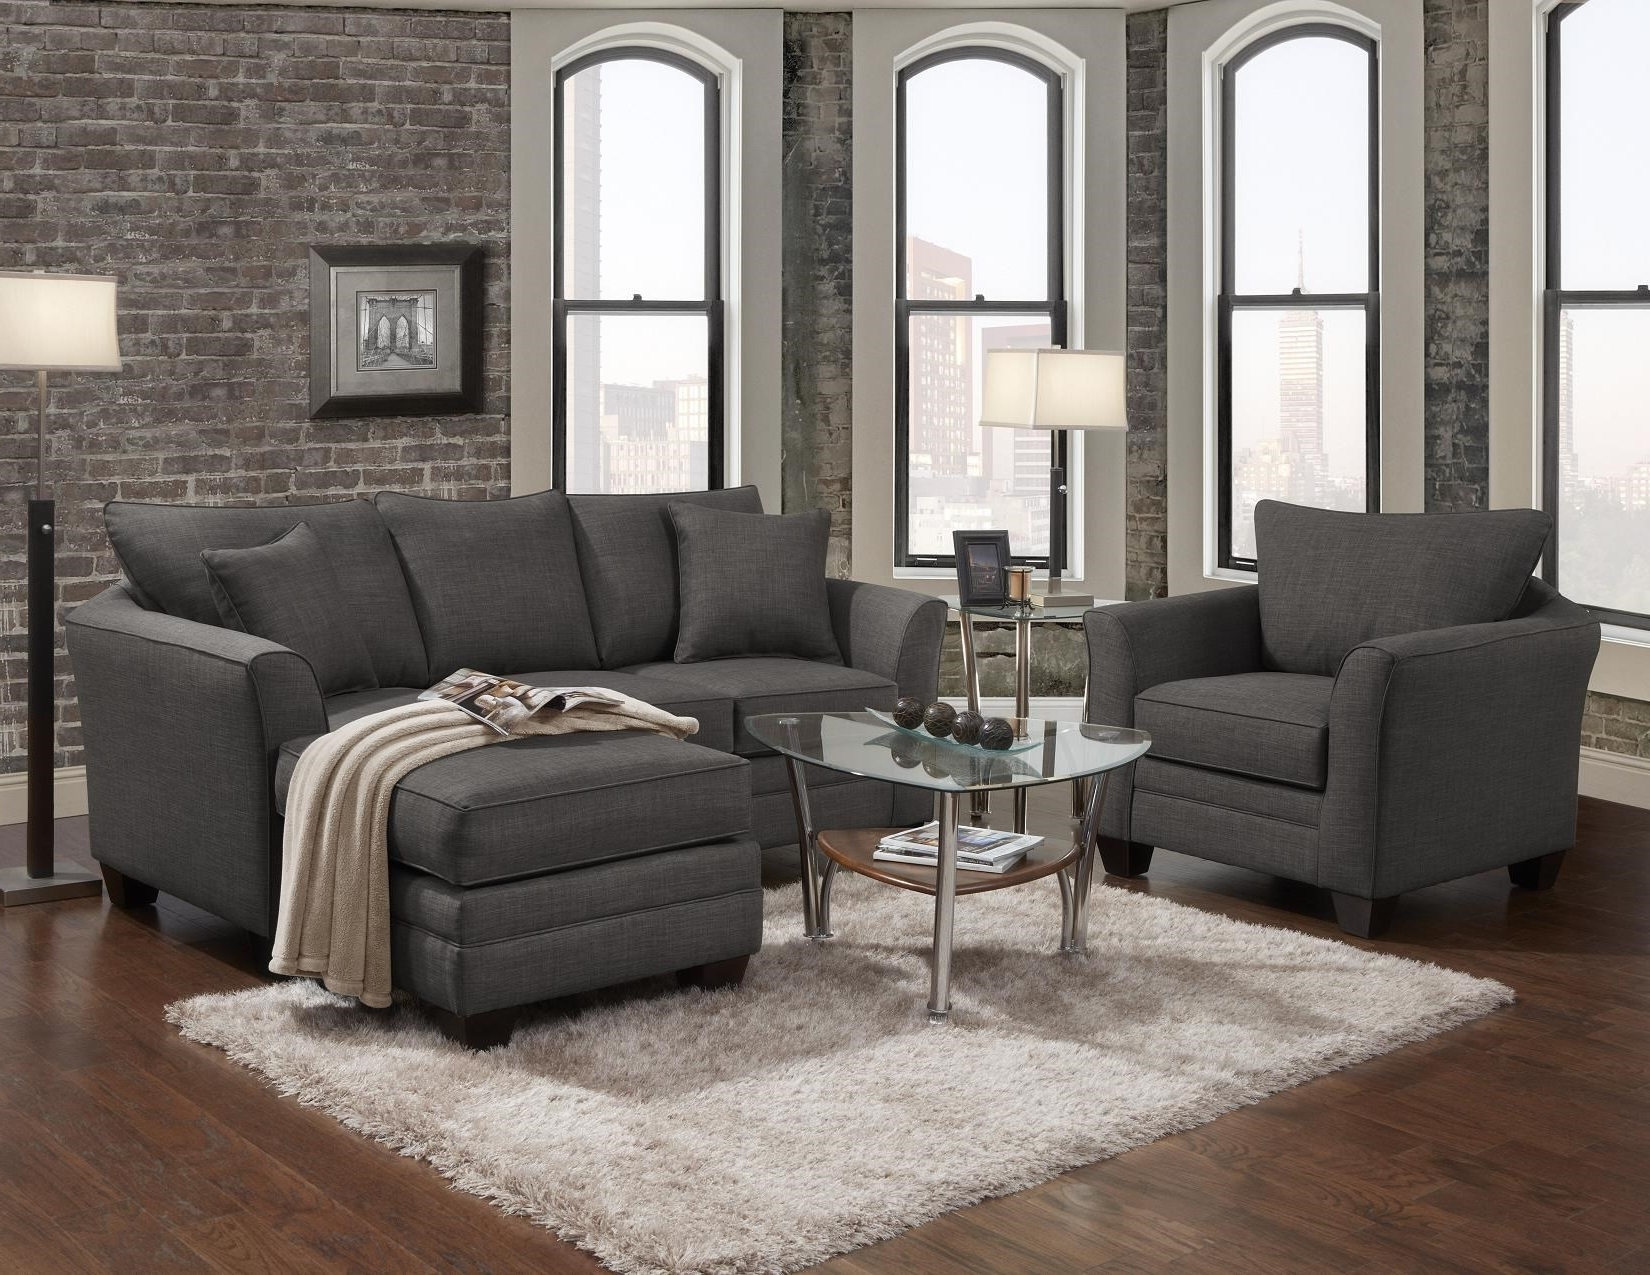 Gardiners Sectional Sofas Throughout Well Known Shop Sectionals (View 17 of 20)